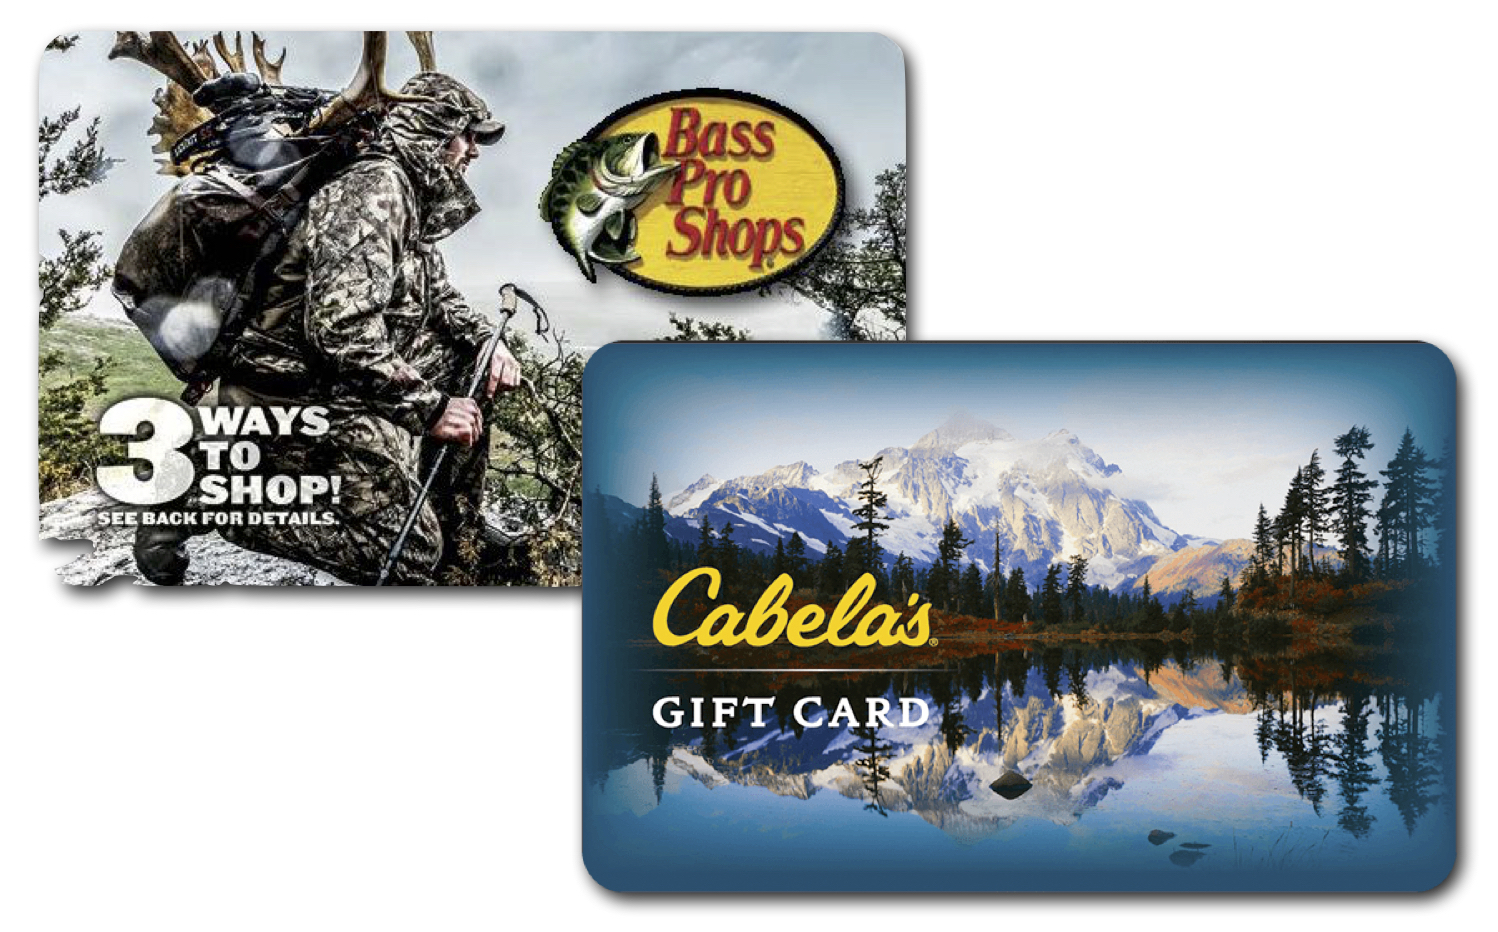 3rd Prize - $2,500.00 Bass Pro Shops/Cabela's Gift Card. Bass Pro Shops and Cabela's offers the most comprehensive selection of Fishing, Hunting, Camping, Boating, and Outdoor Gear, that you will find anywhere. The Gift Card can be redeemed for online purchases, catalog orders, and purchases made at Bass Pro Shops and Cabela's retail stores.